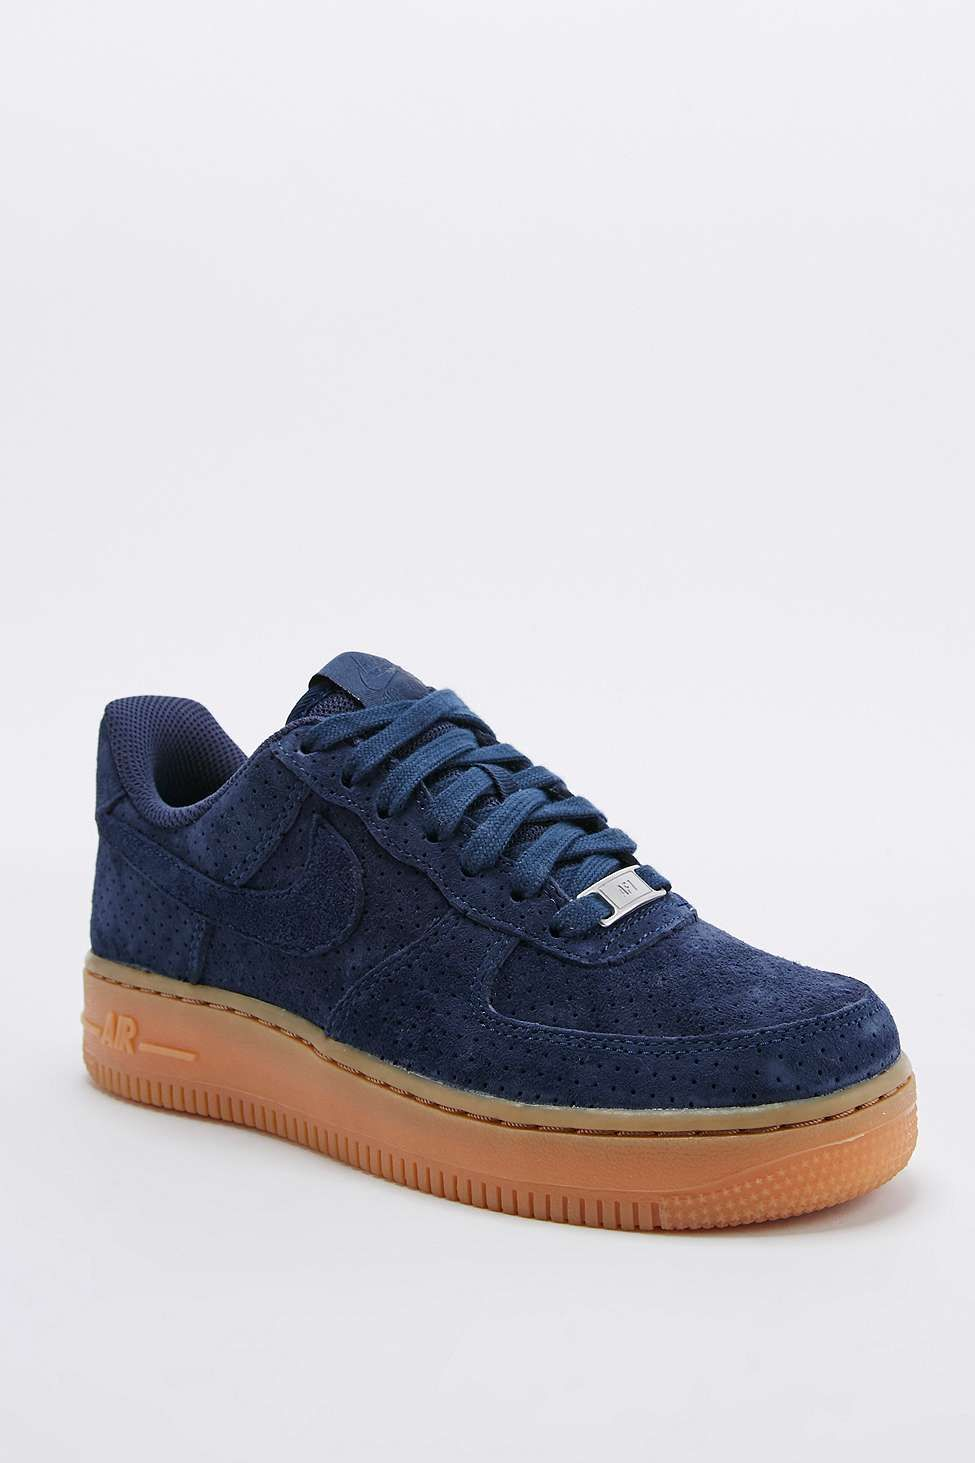 san francisco 84c86 11071 Nike - Baskets montantes Air Force 1 en daim bleu marine